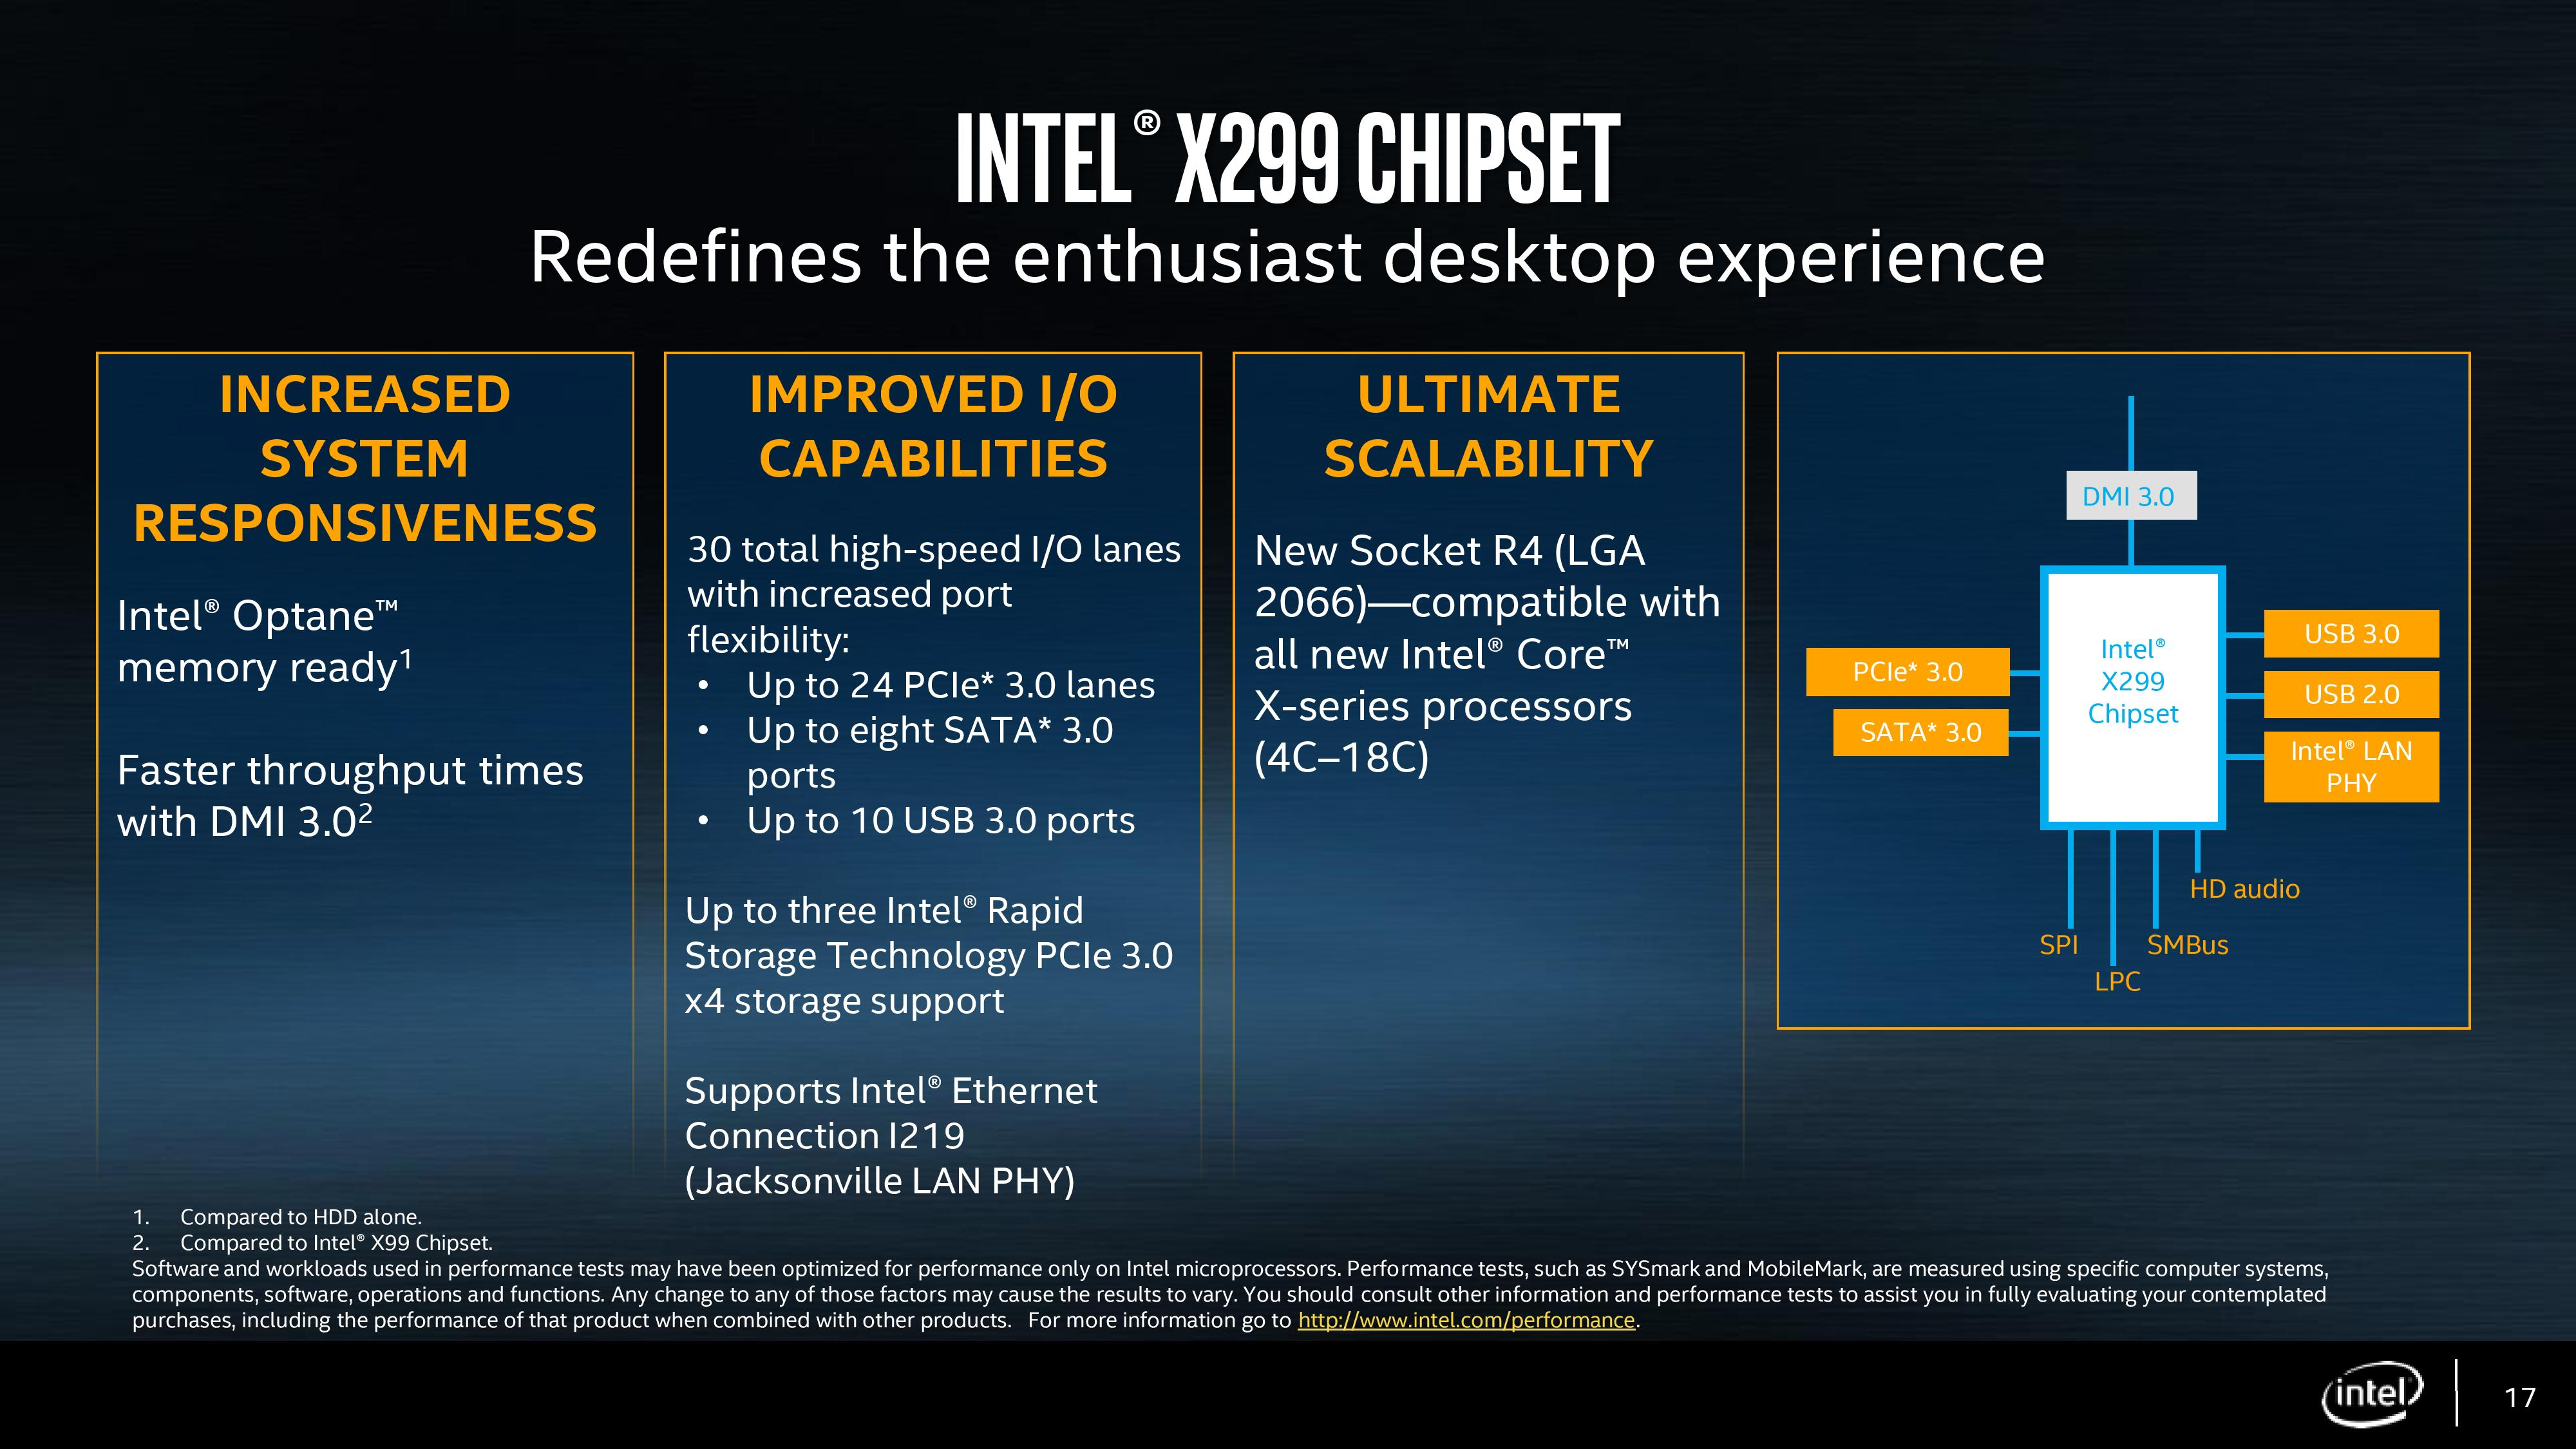 Intel Core i9 and X-series motherboard X299 chipset